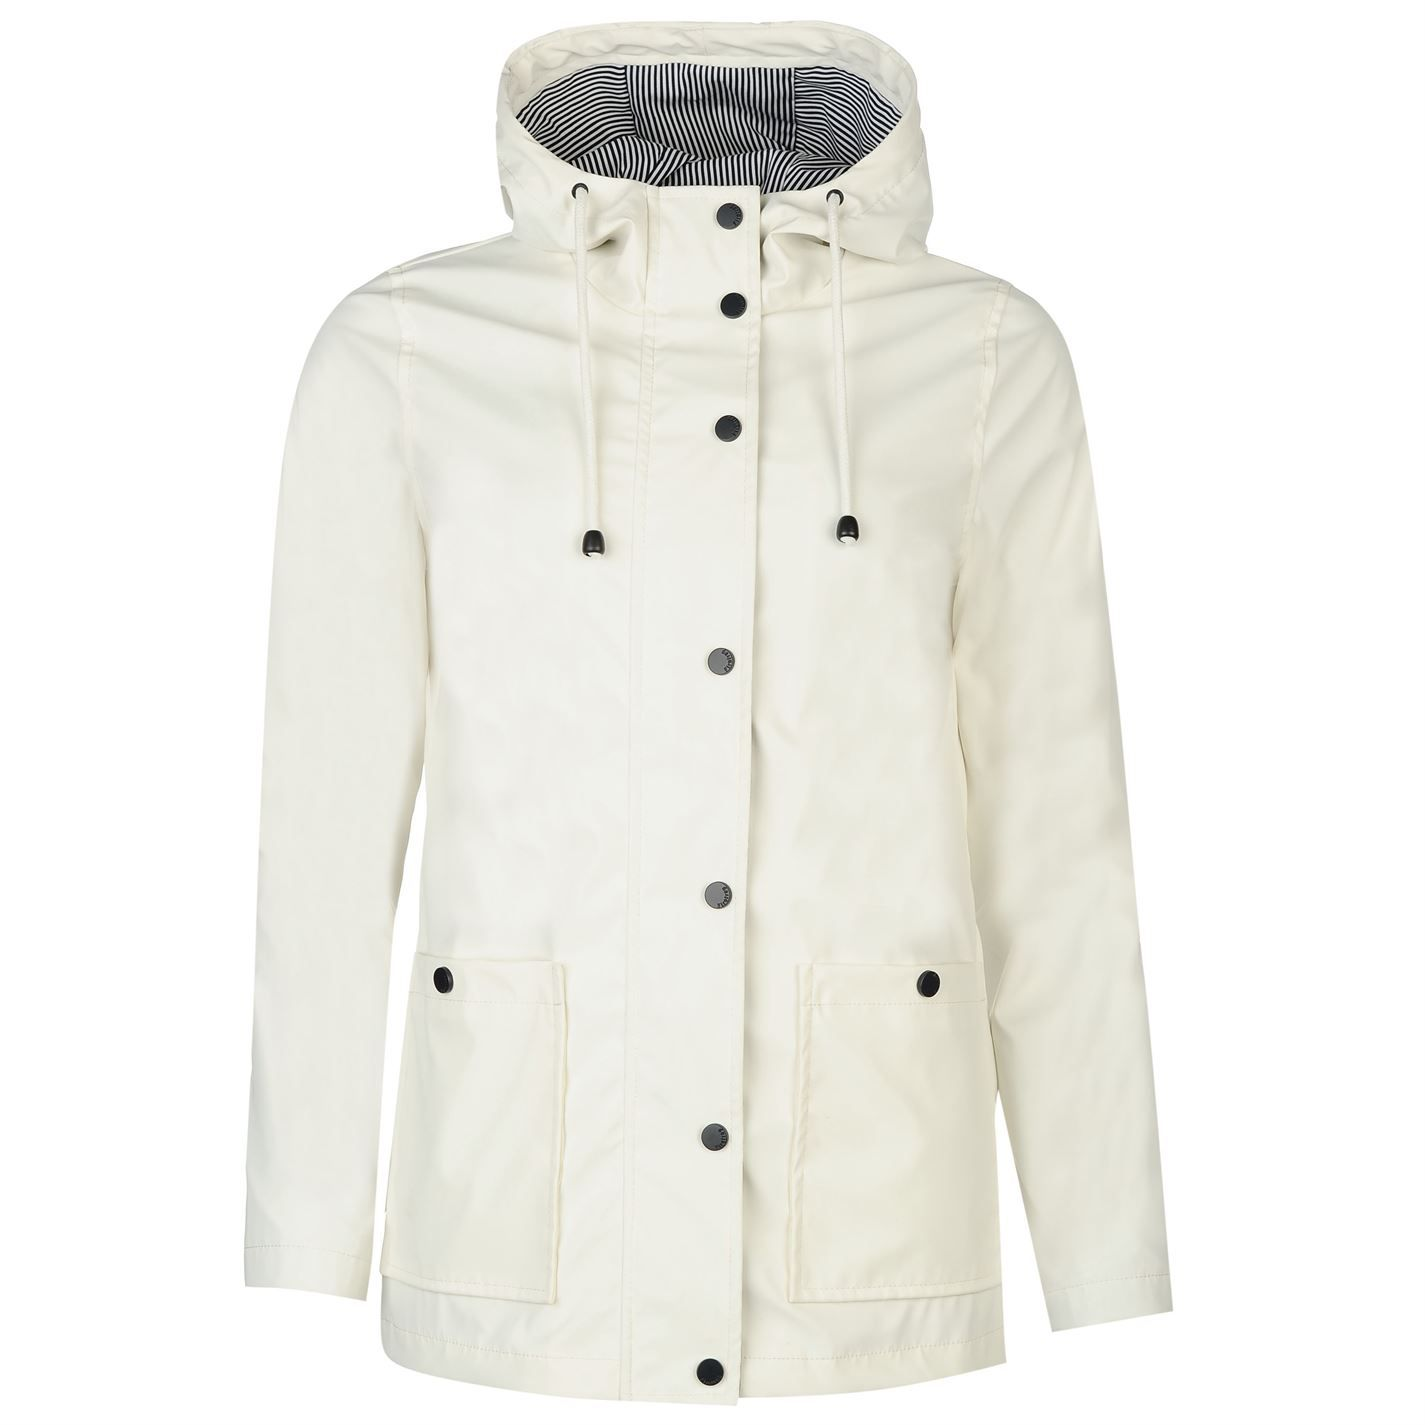 free shipping better price for popular brand Firetrap | Firetrap Rain Mac | Ladies Coats and Jackets ...